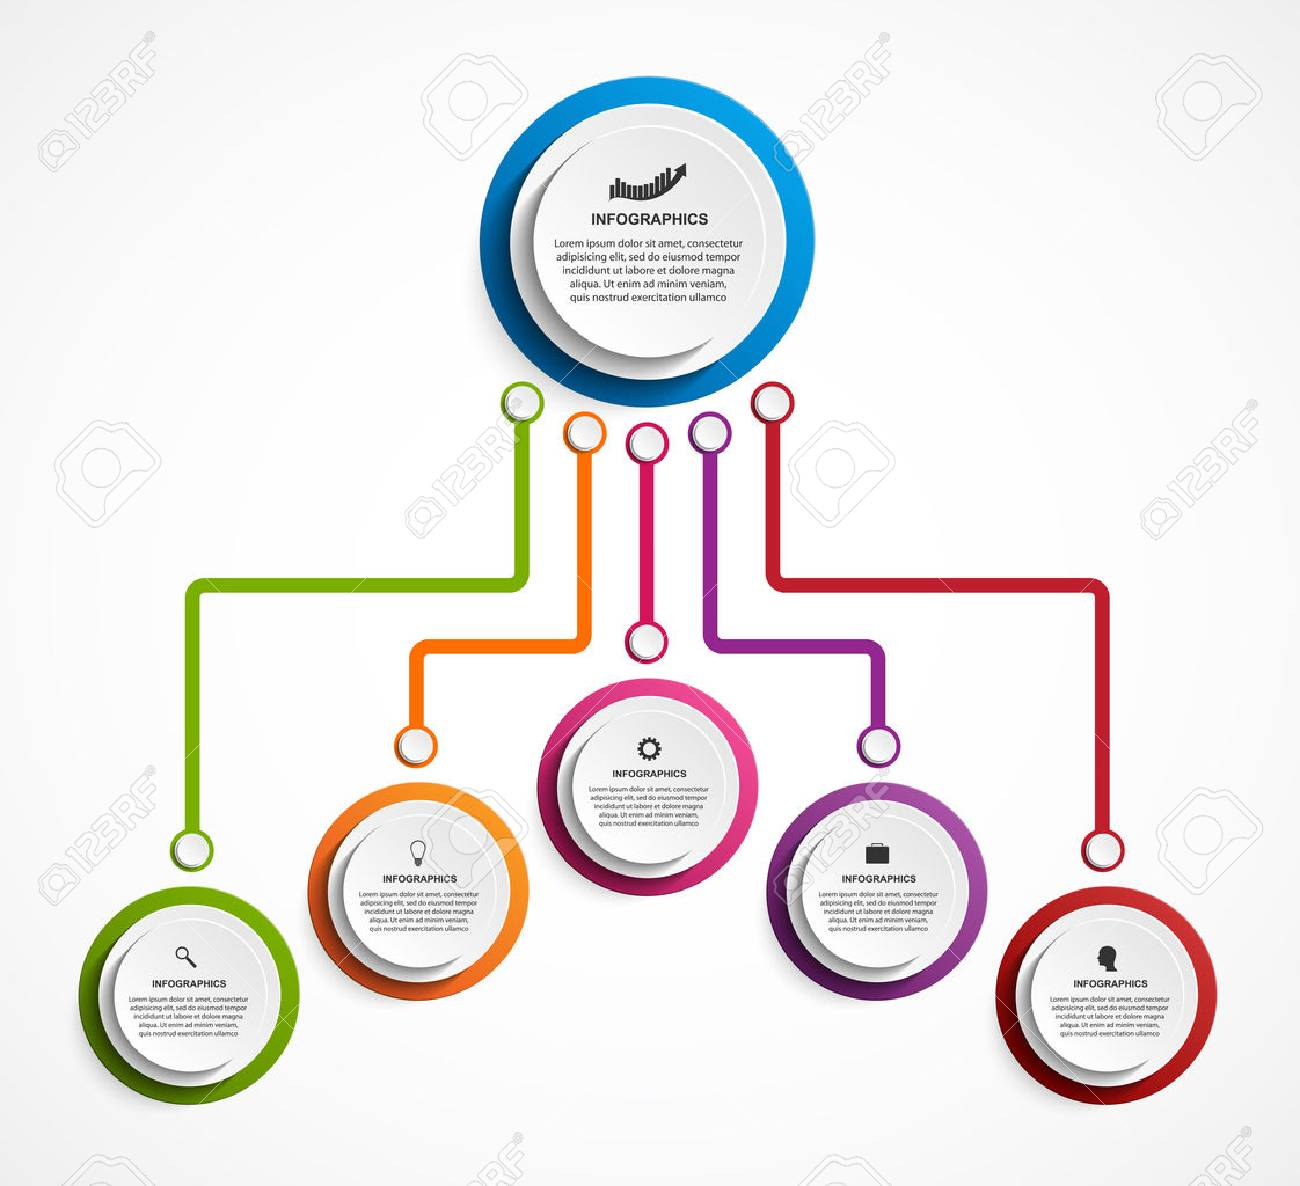 Infographic Design Organization Chart Template Royalty Free